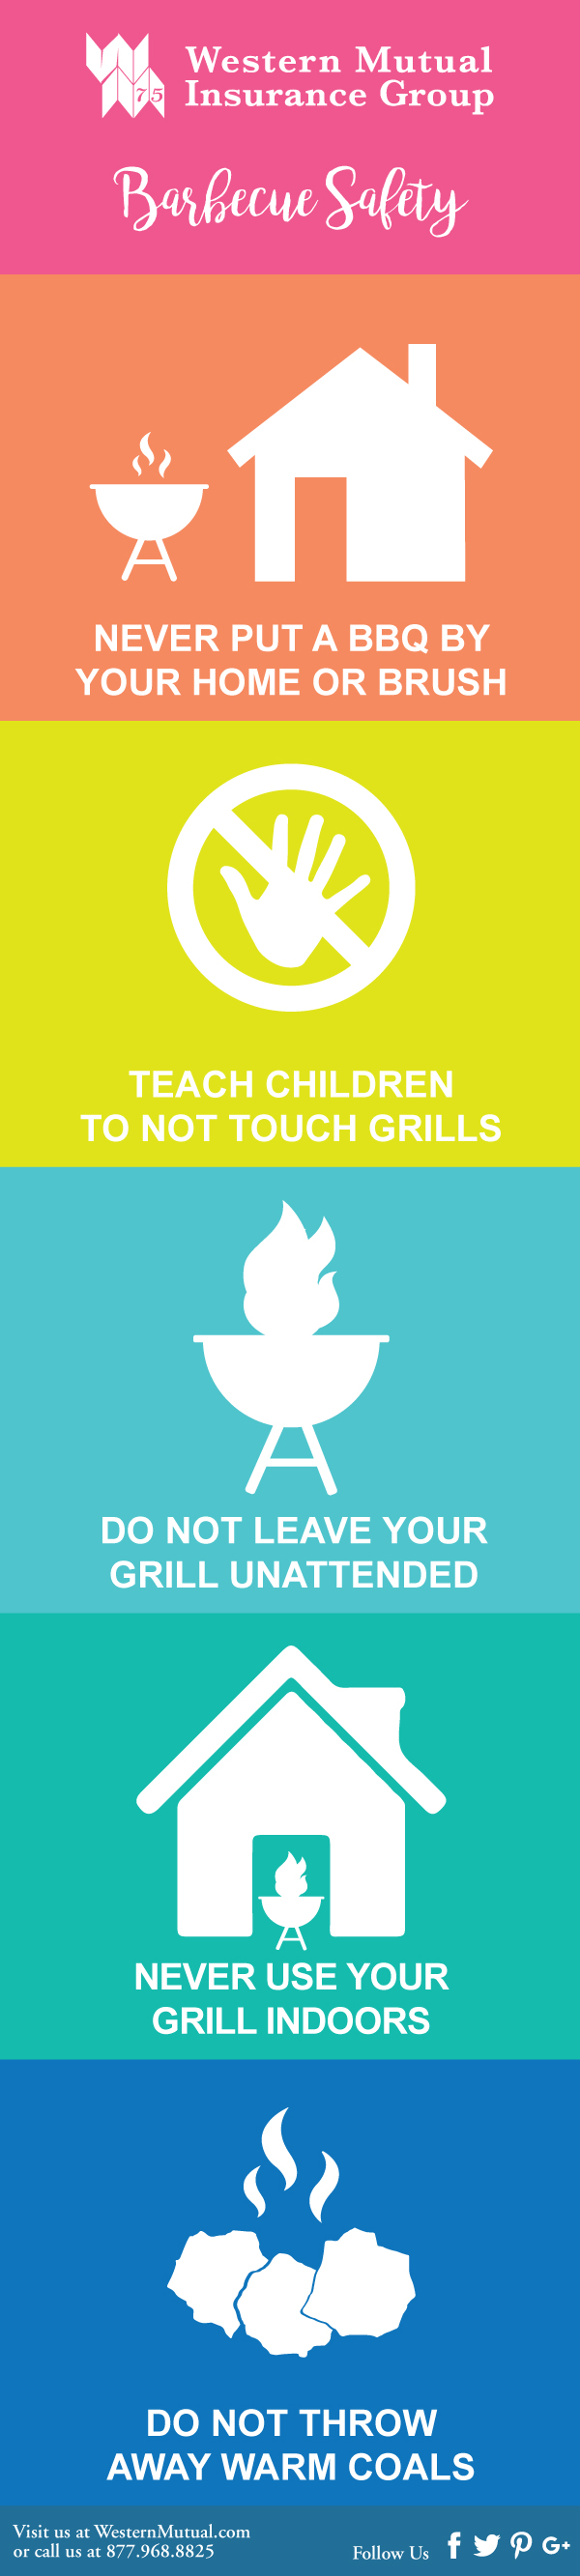 BBQ-Safety-Infographic_6.25.18